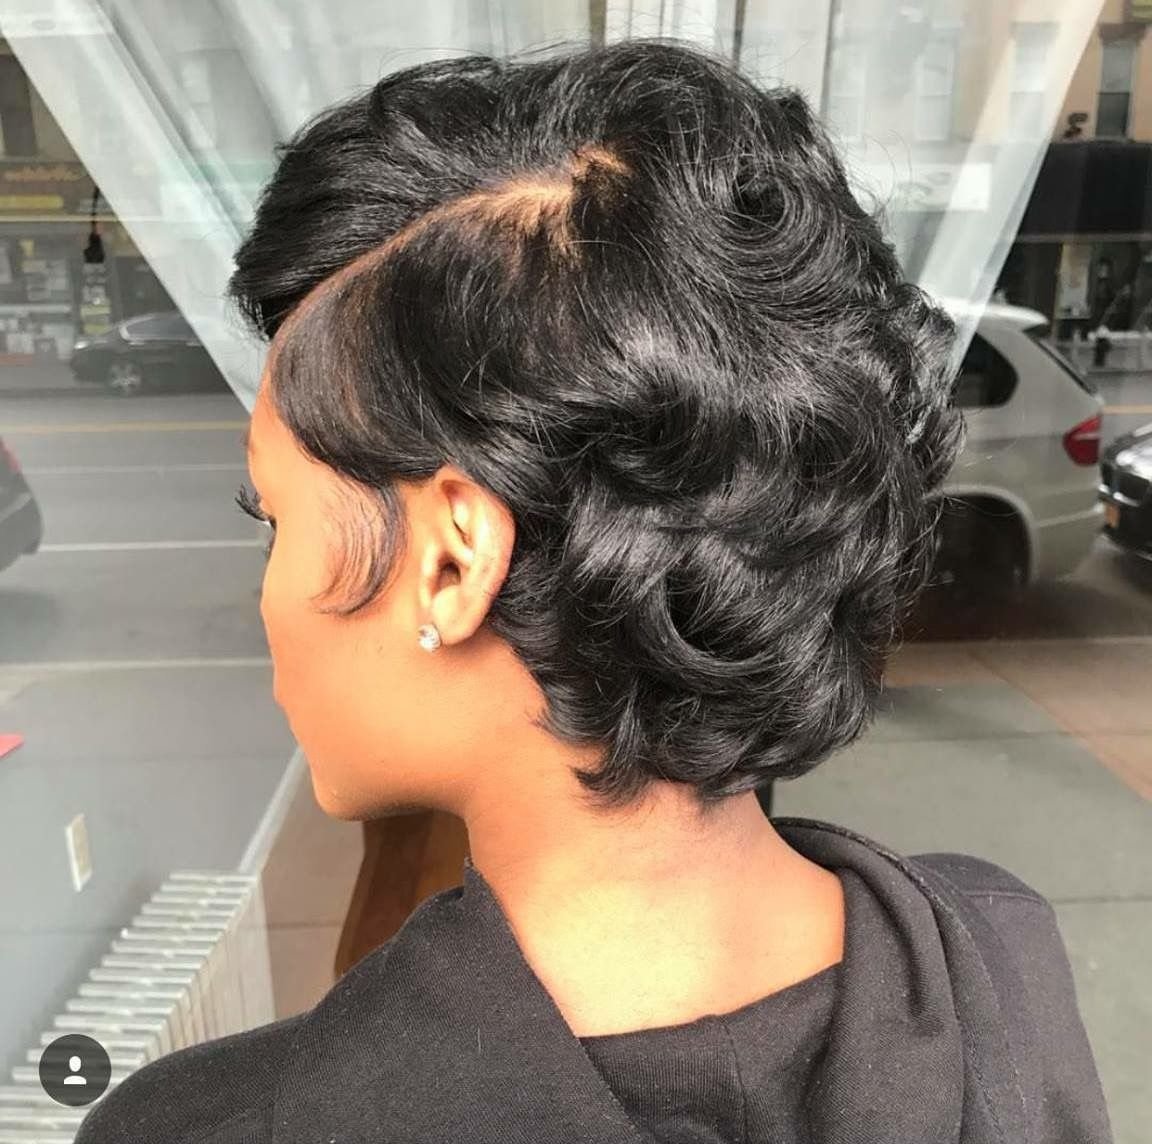 Pin by keandra perry on perf hair pinterest short hair hair